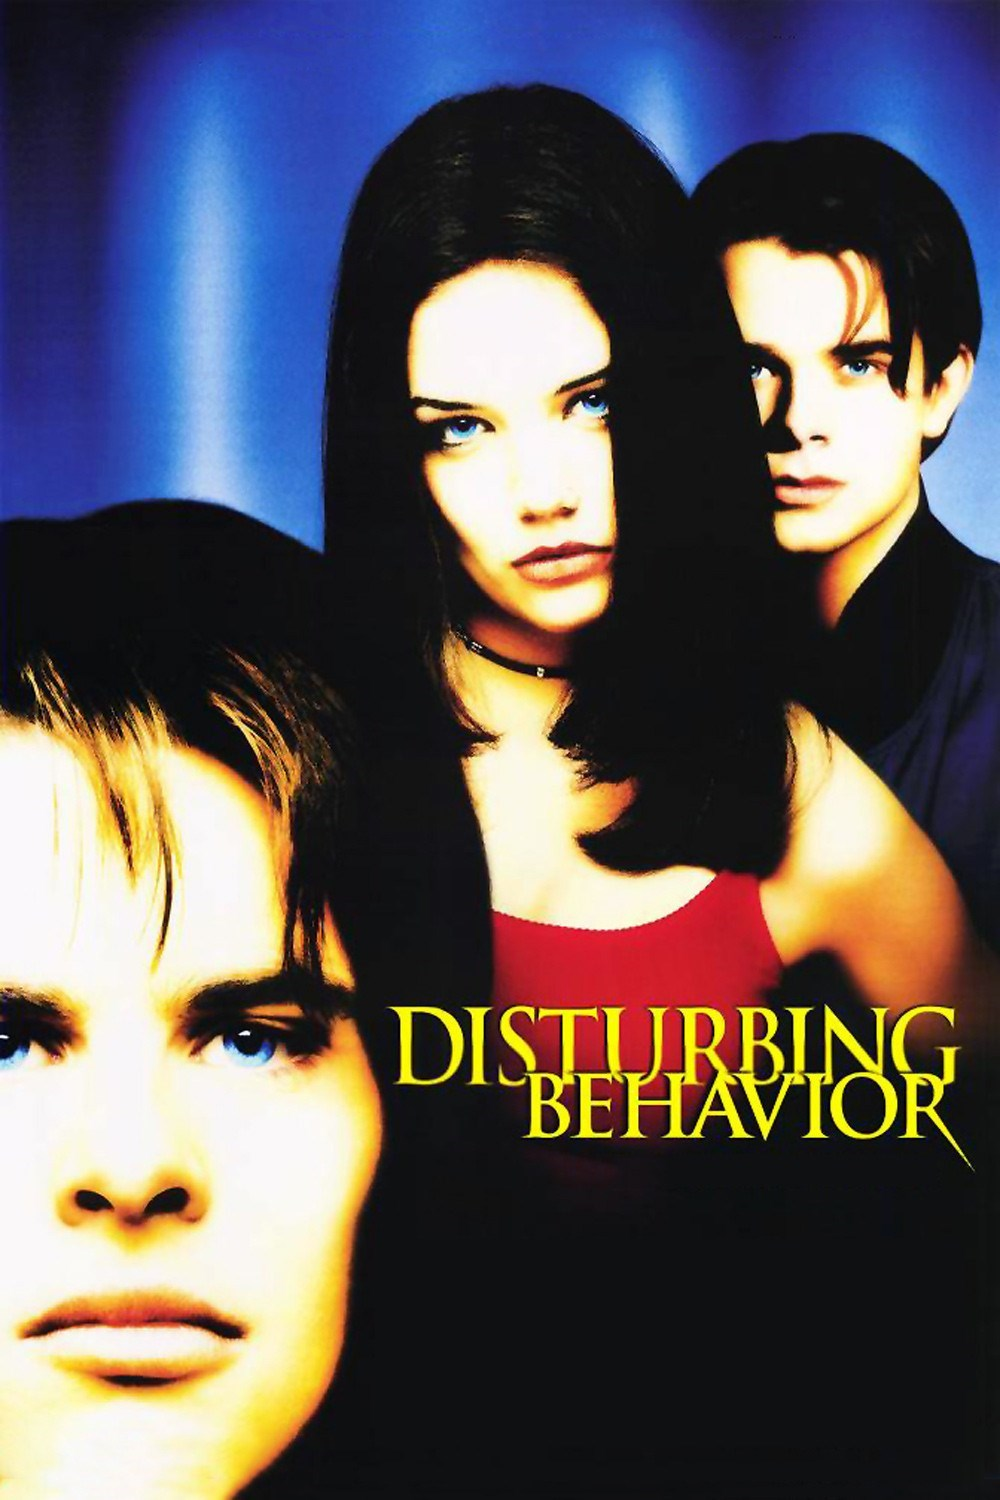 disturbing-behavior.16820.jpg